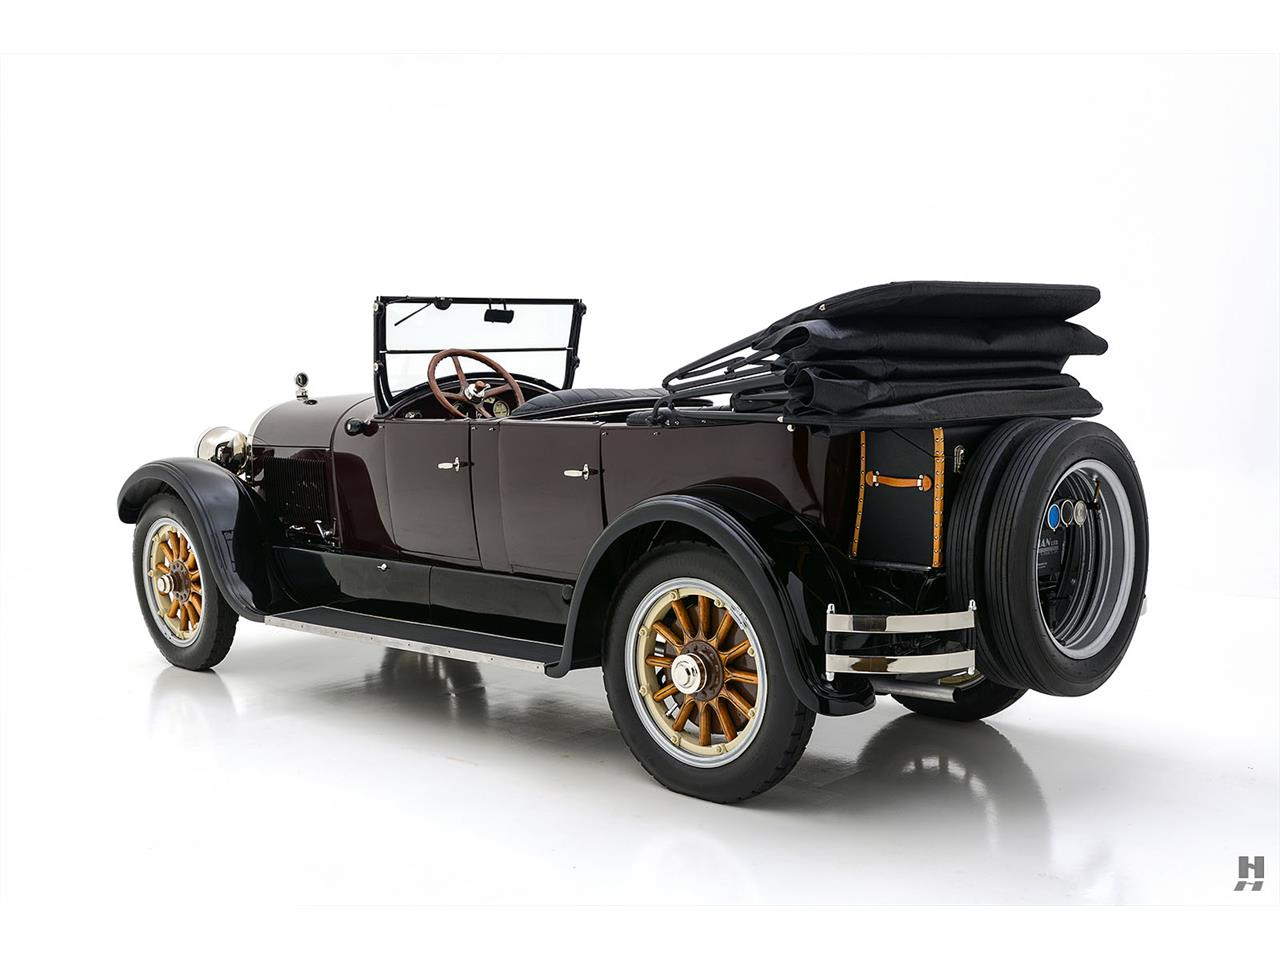 1925 Cadillac Type V-63 (CC-1374993) for sale in Saint Louis, Missouri